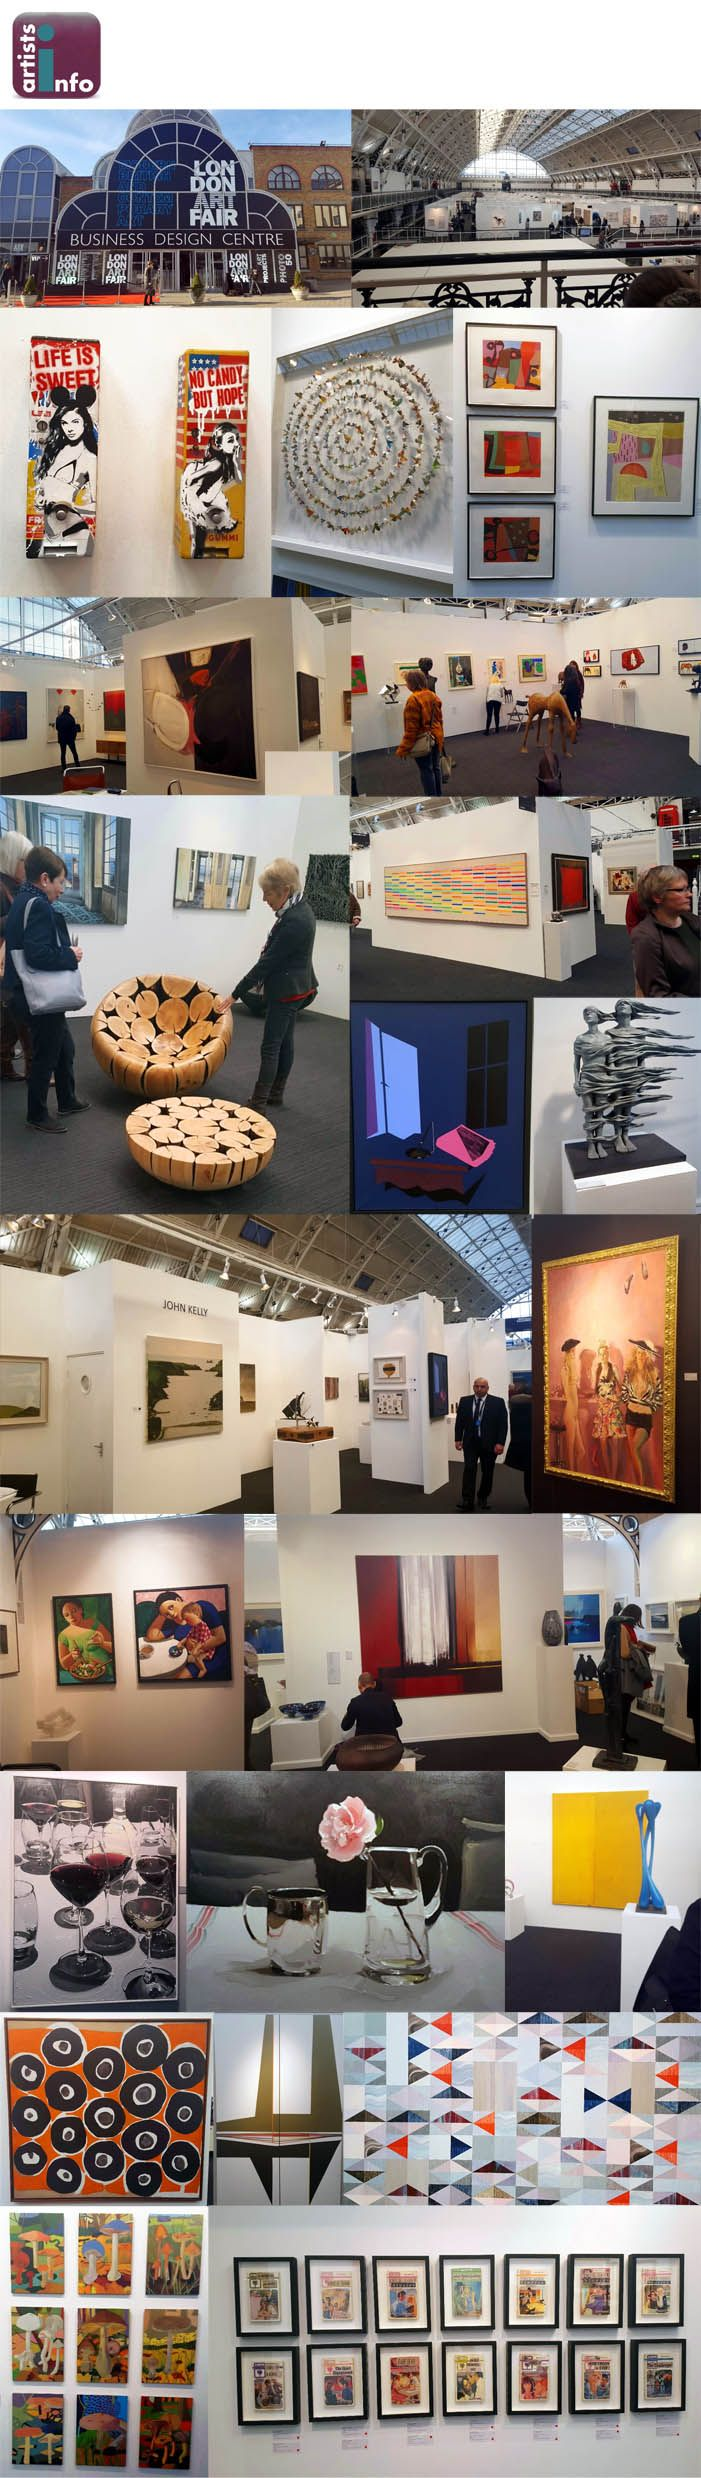 Artists Info's Melanie and Jean had a great day out at the London Art Fair at the Business Design Centre in Islington last week. There was a huge array of fantastic artwork on display and lots of lovely red dots! Here are some of their highlights from the show… www.artistsinfo.co.uk Global Artist Guide